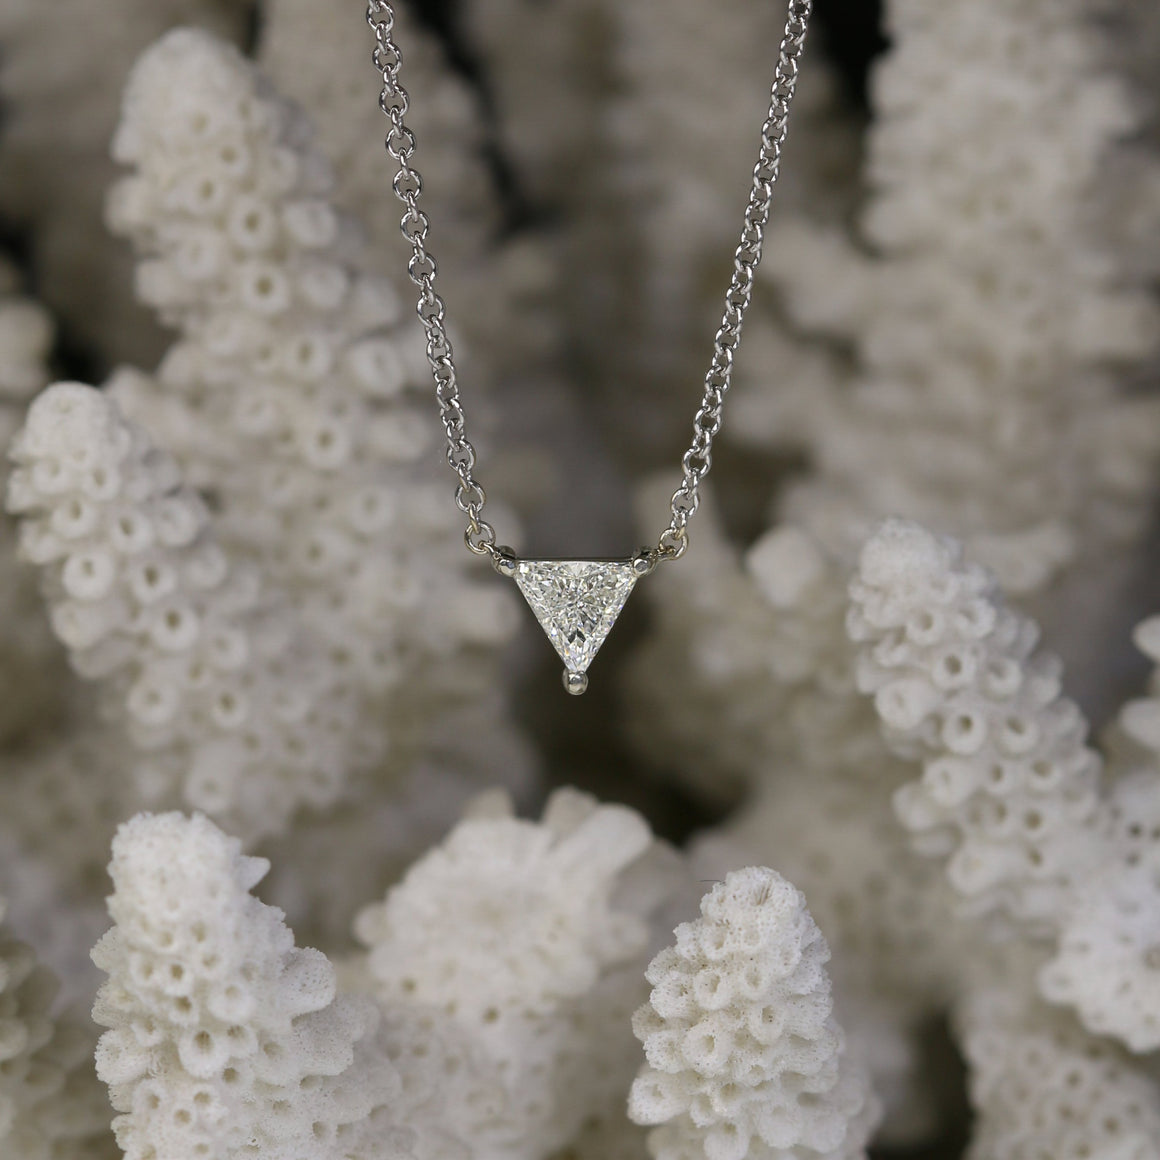 Triangular Diamond Solitaire Necklace in White Gold - 0.29ct